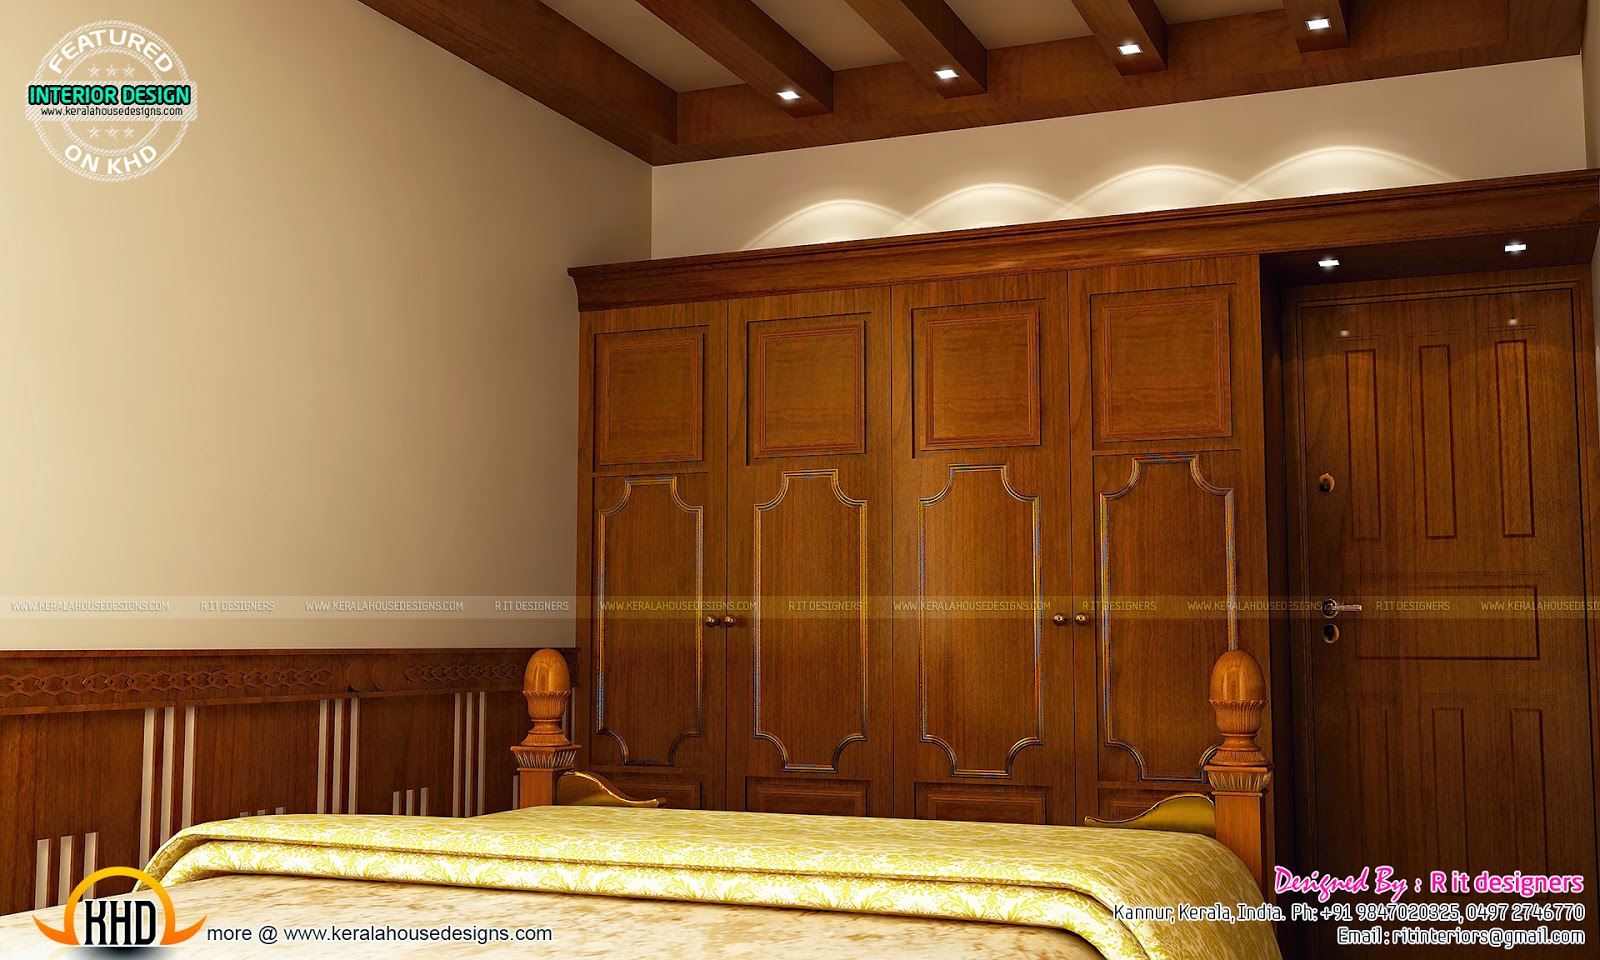 Master Bedroom Designs Kerala Home Design And Floor Plans: wardrobe in master bedroom